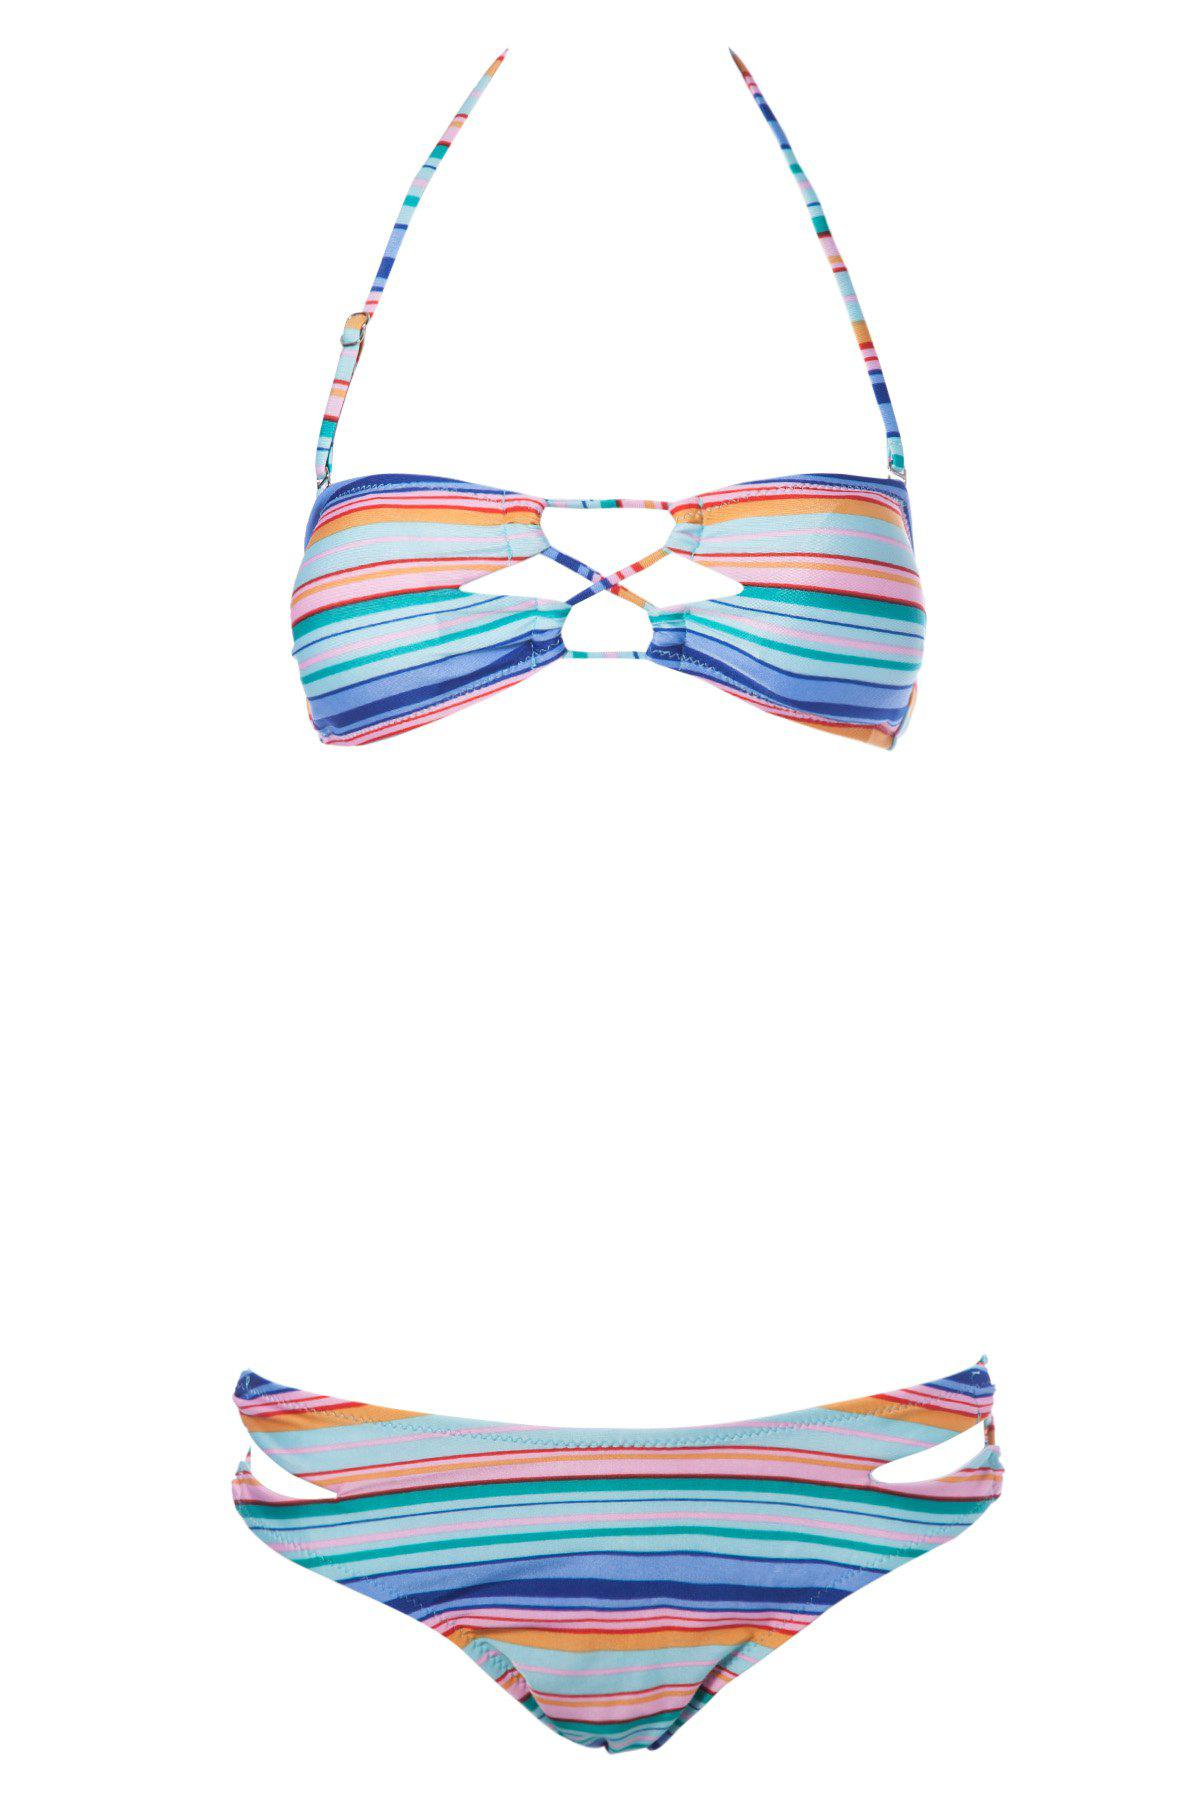 New Sexy Strapless Striped Women's Bikini Set